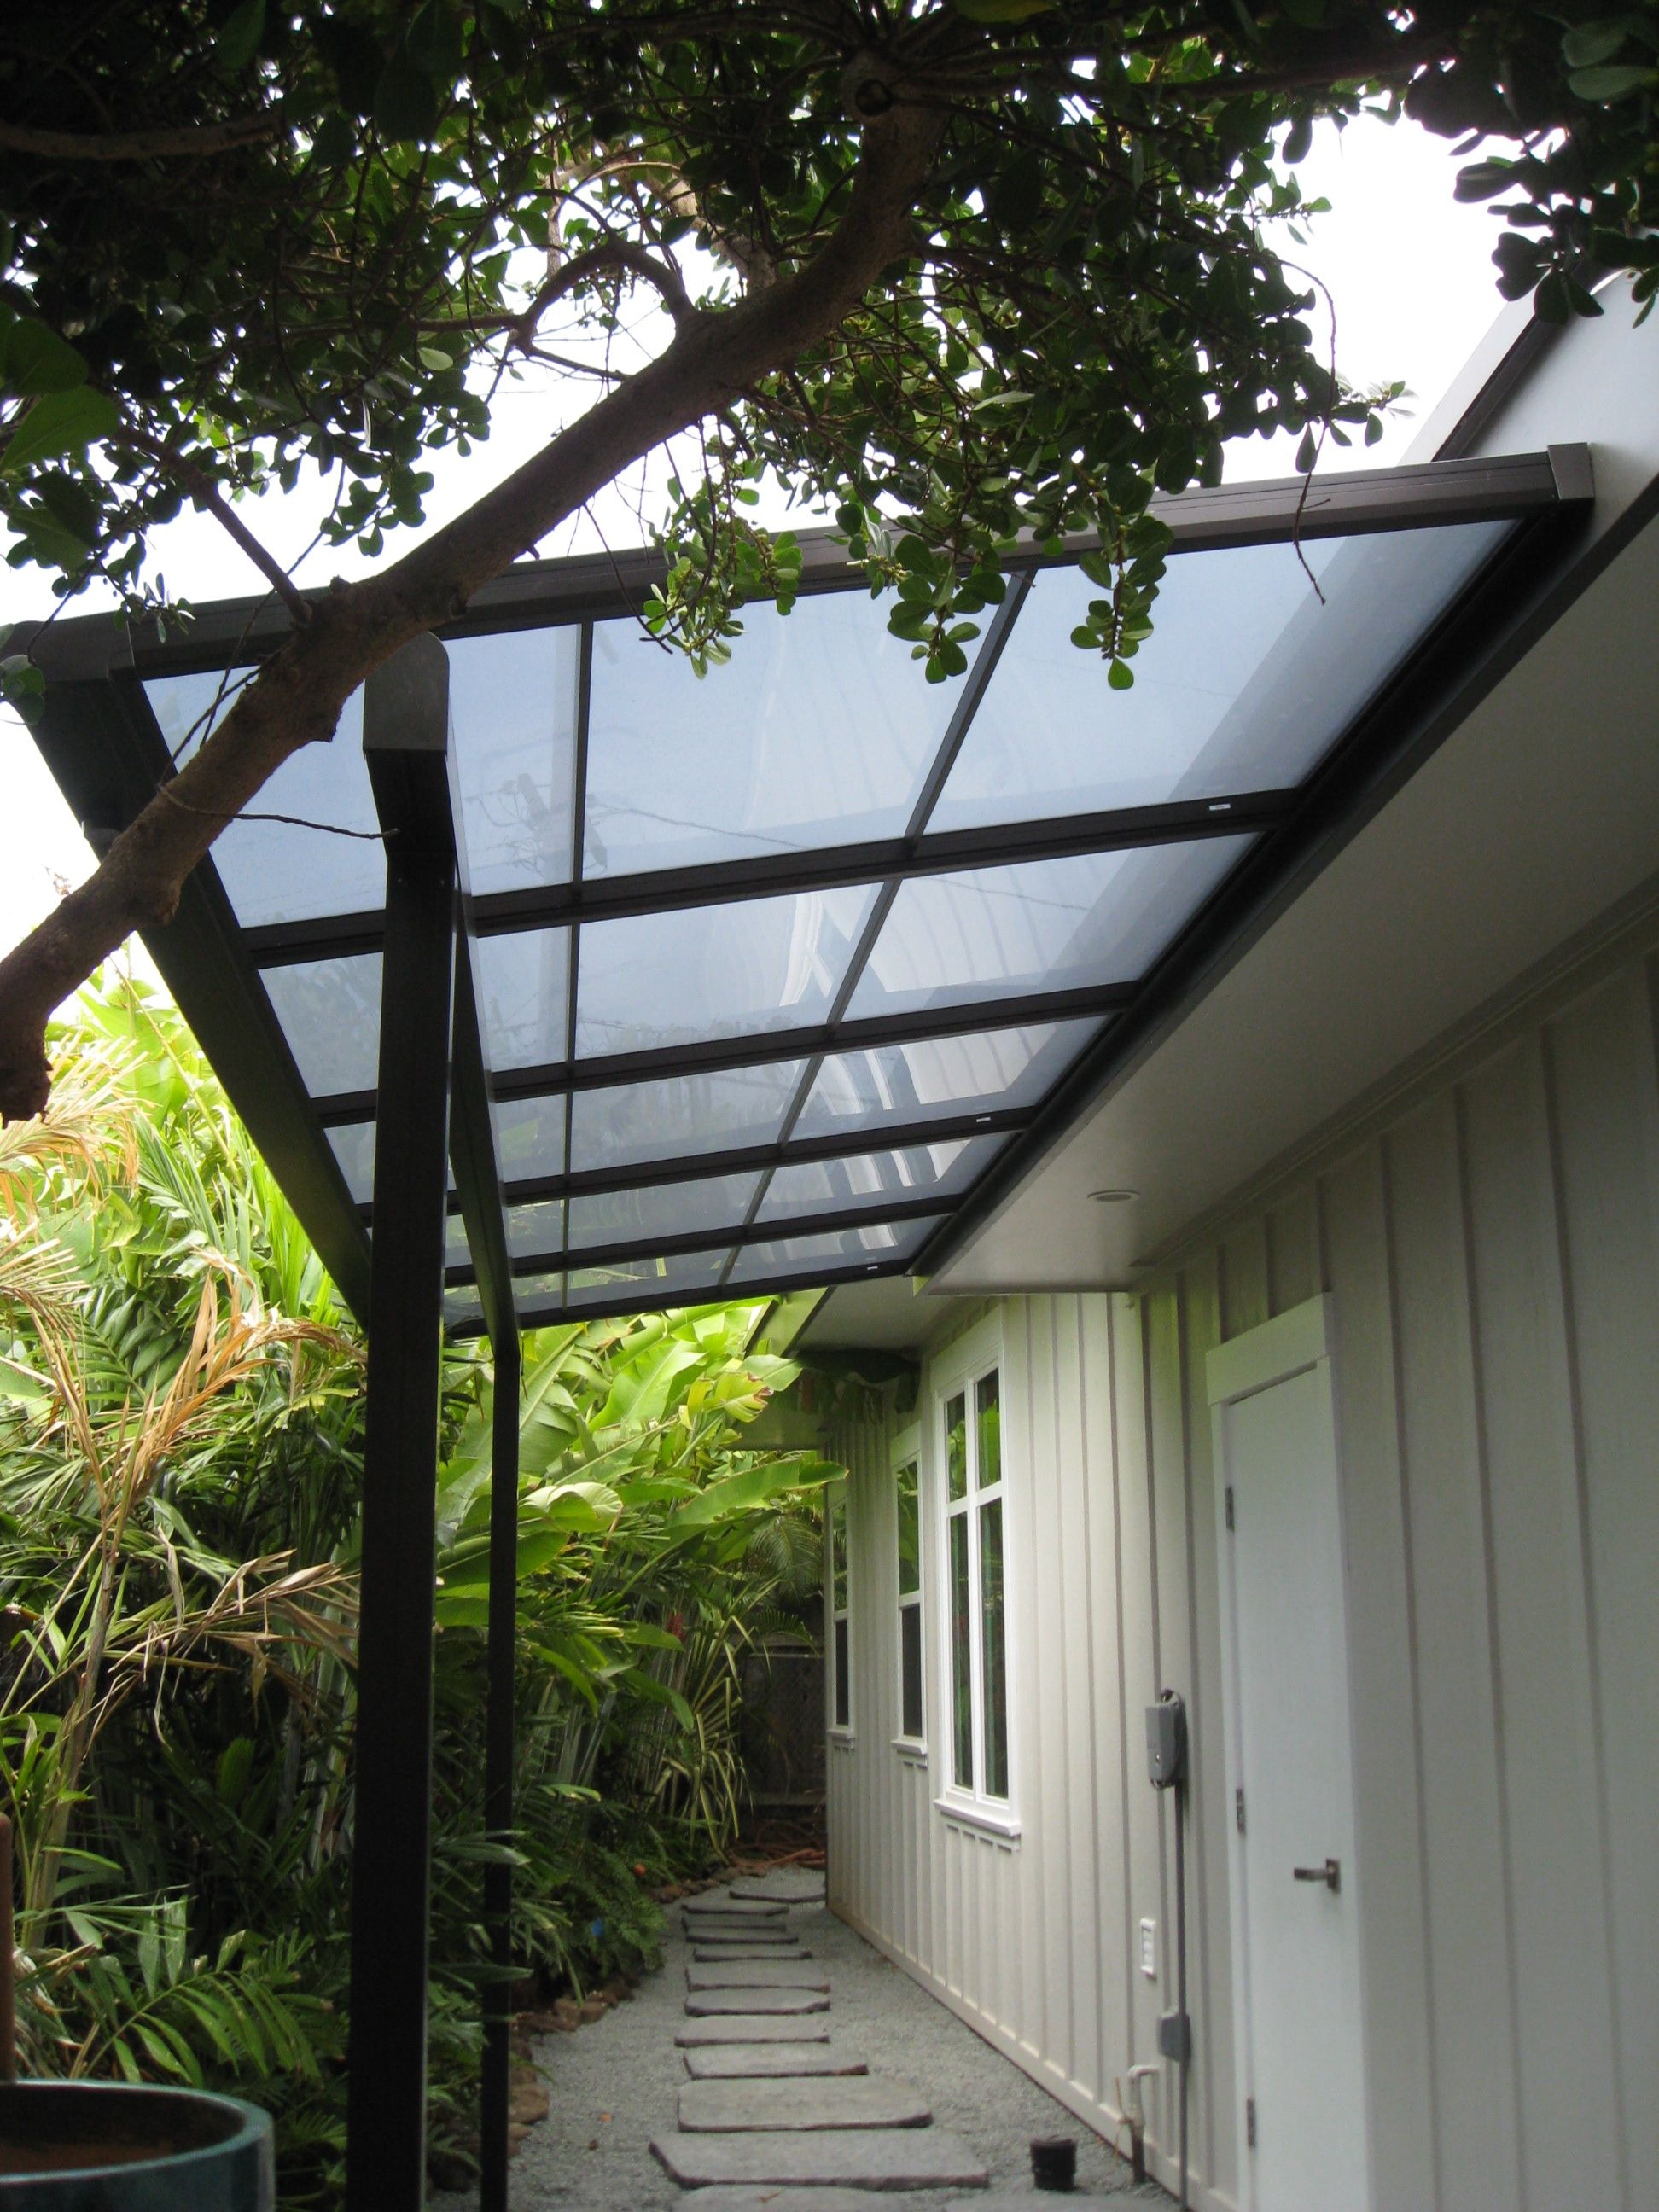 Small Patio Cover With Bearing Beam And Polycarbonate (LEXAN) Roof Panels.  Itu0027s A